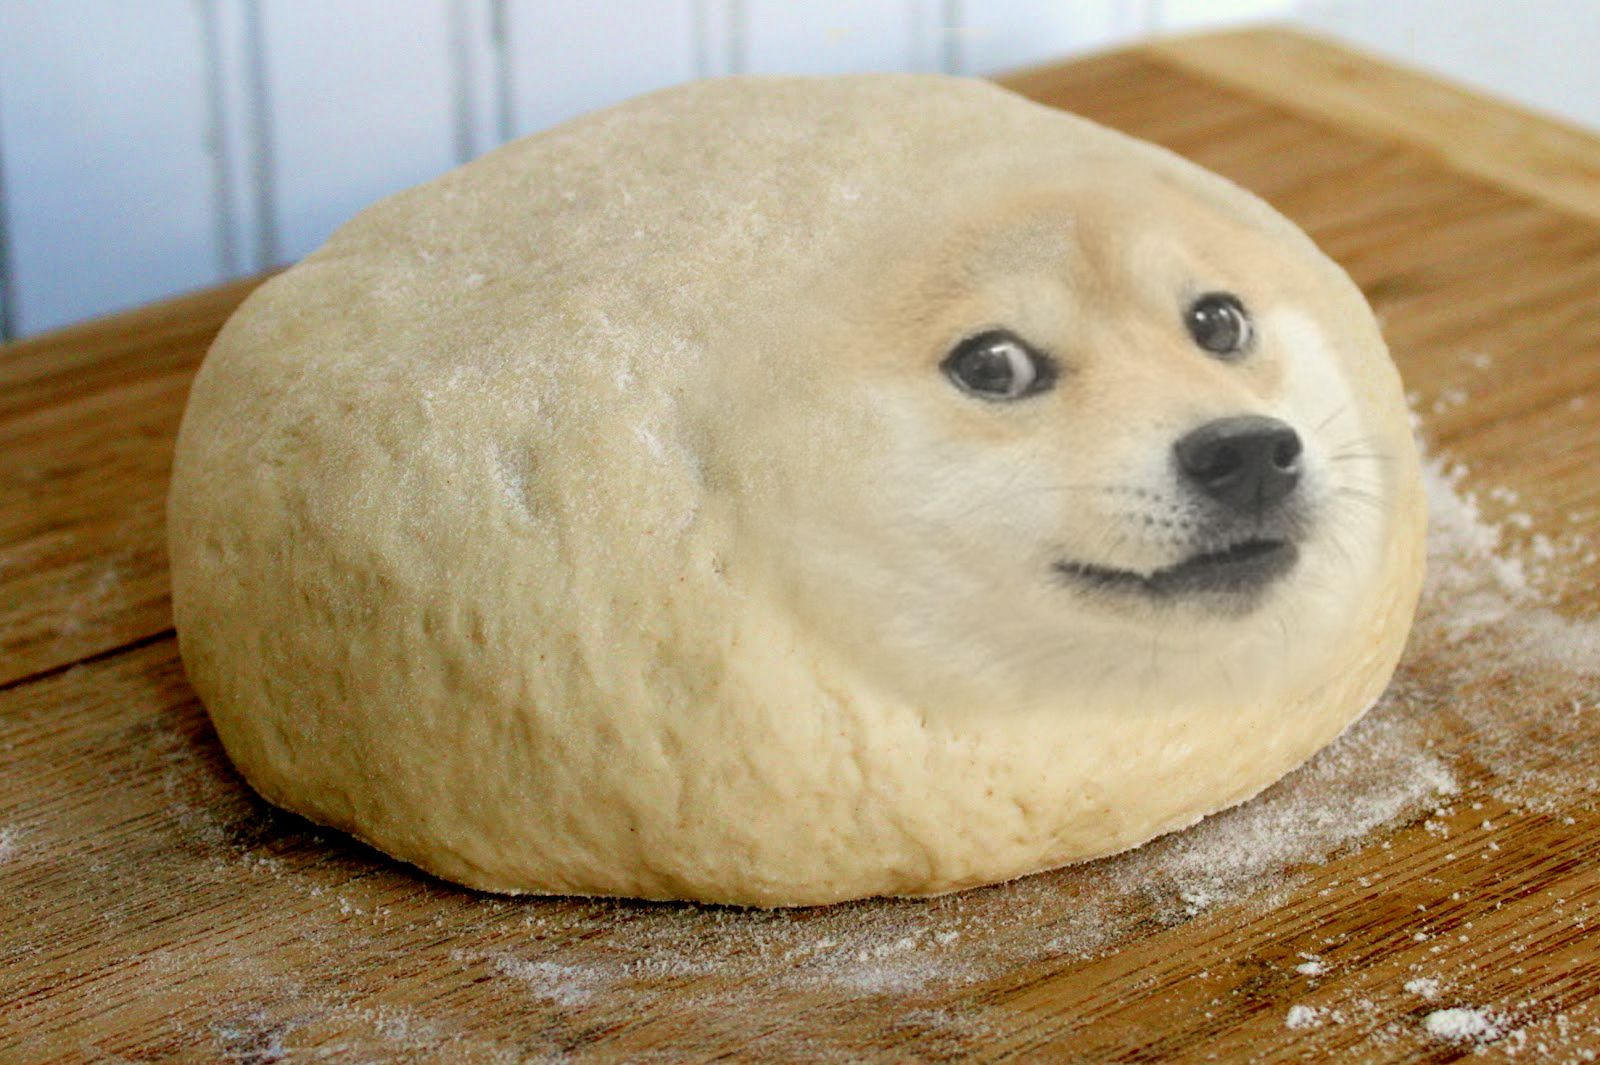 Roblox Doge - Year of Clean Water